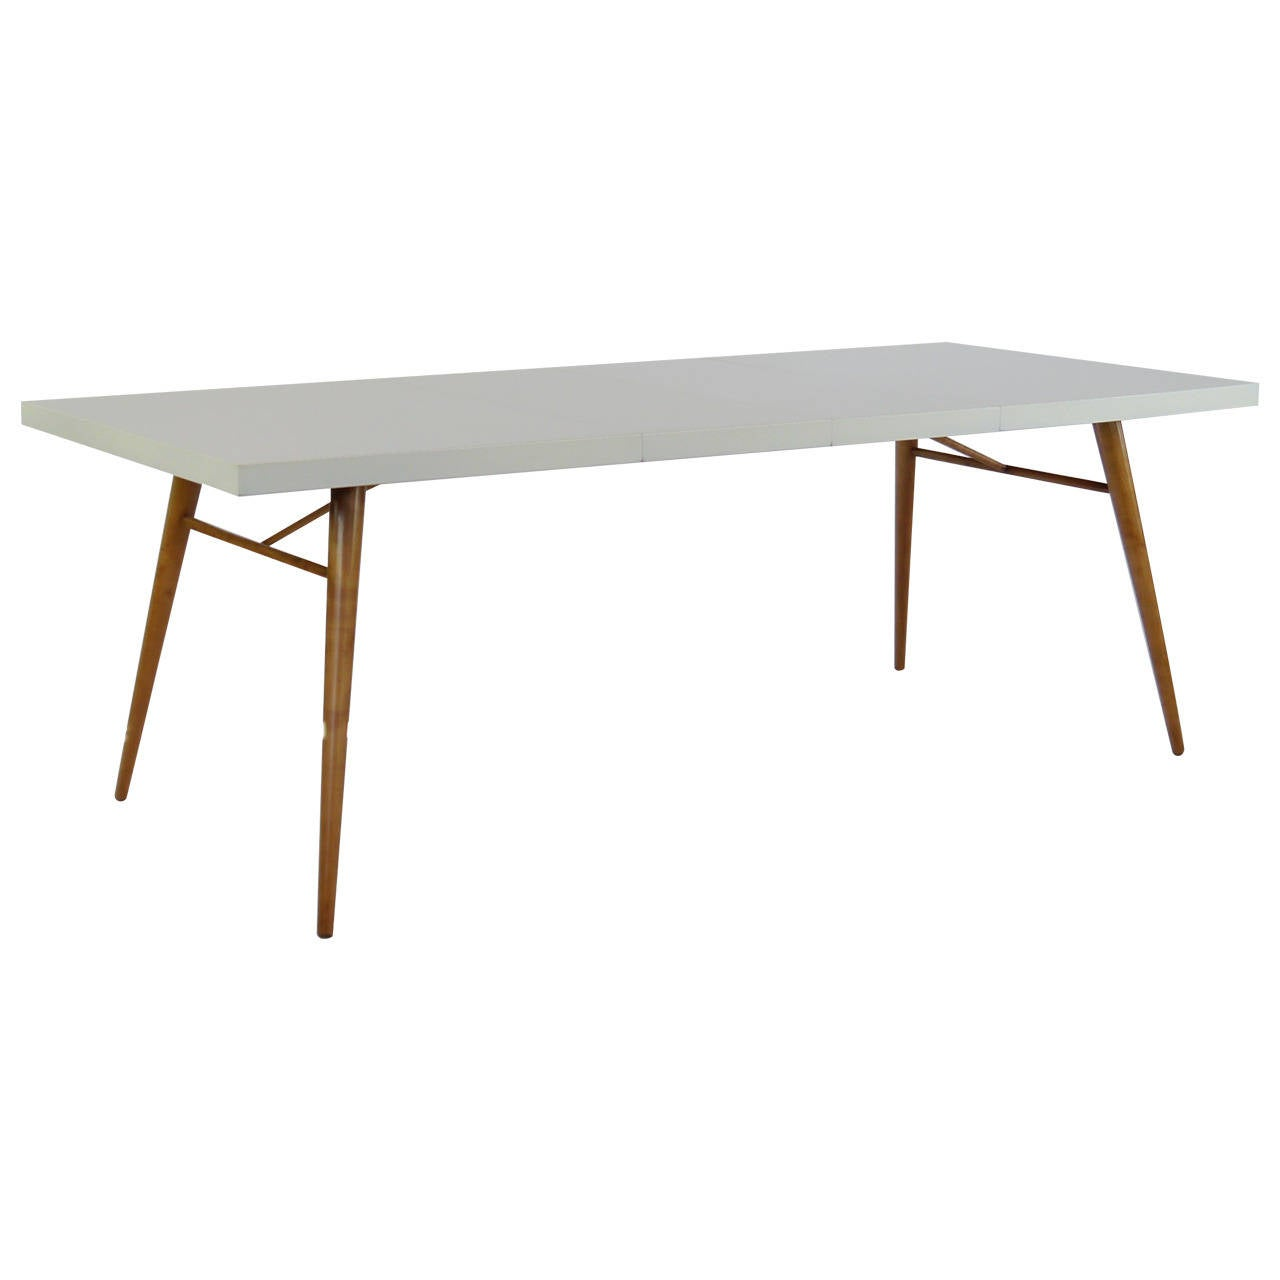 Dining table in white lacquer by paul mccobb at 1stdibs for White lacquer dining table